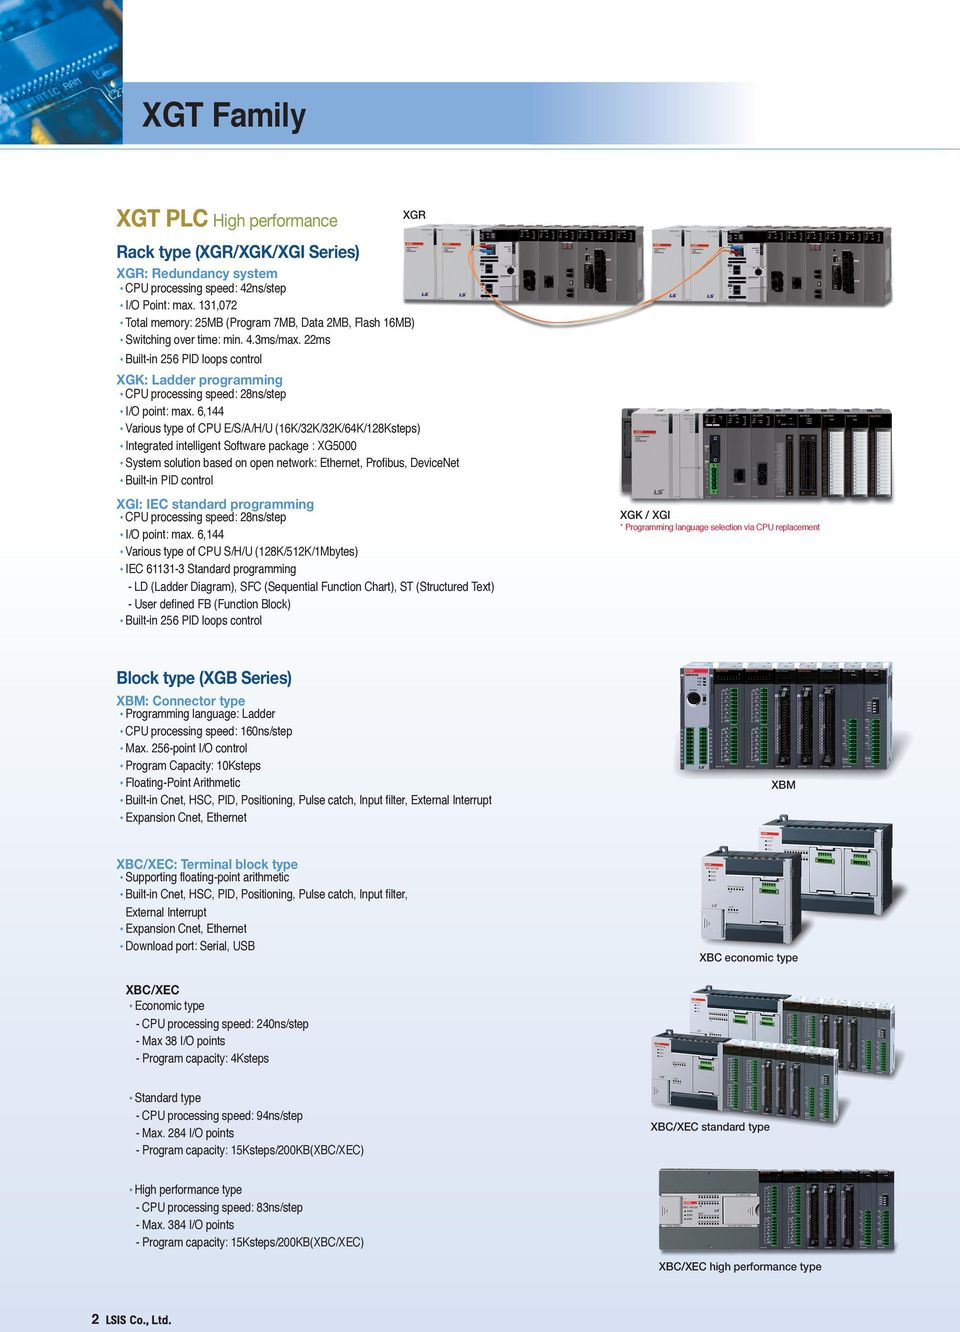 Programmable logic controller ls plc series xgt glofa gm master 22ms builtin 256 pid loops control xgk ladder programming cpu processing speed 28ns publicscrutiny Image collections